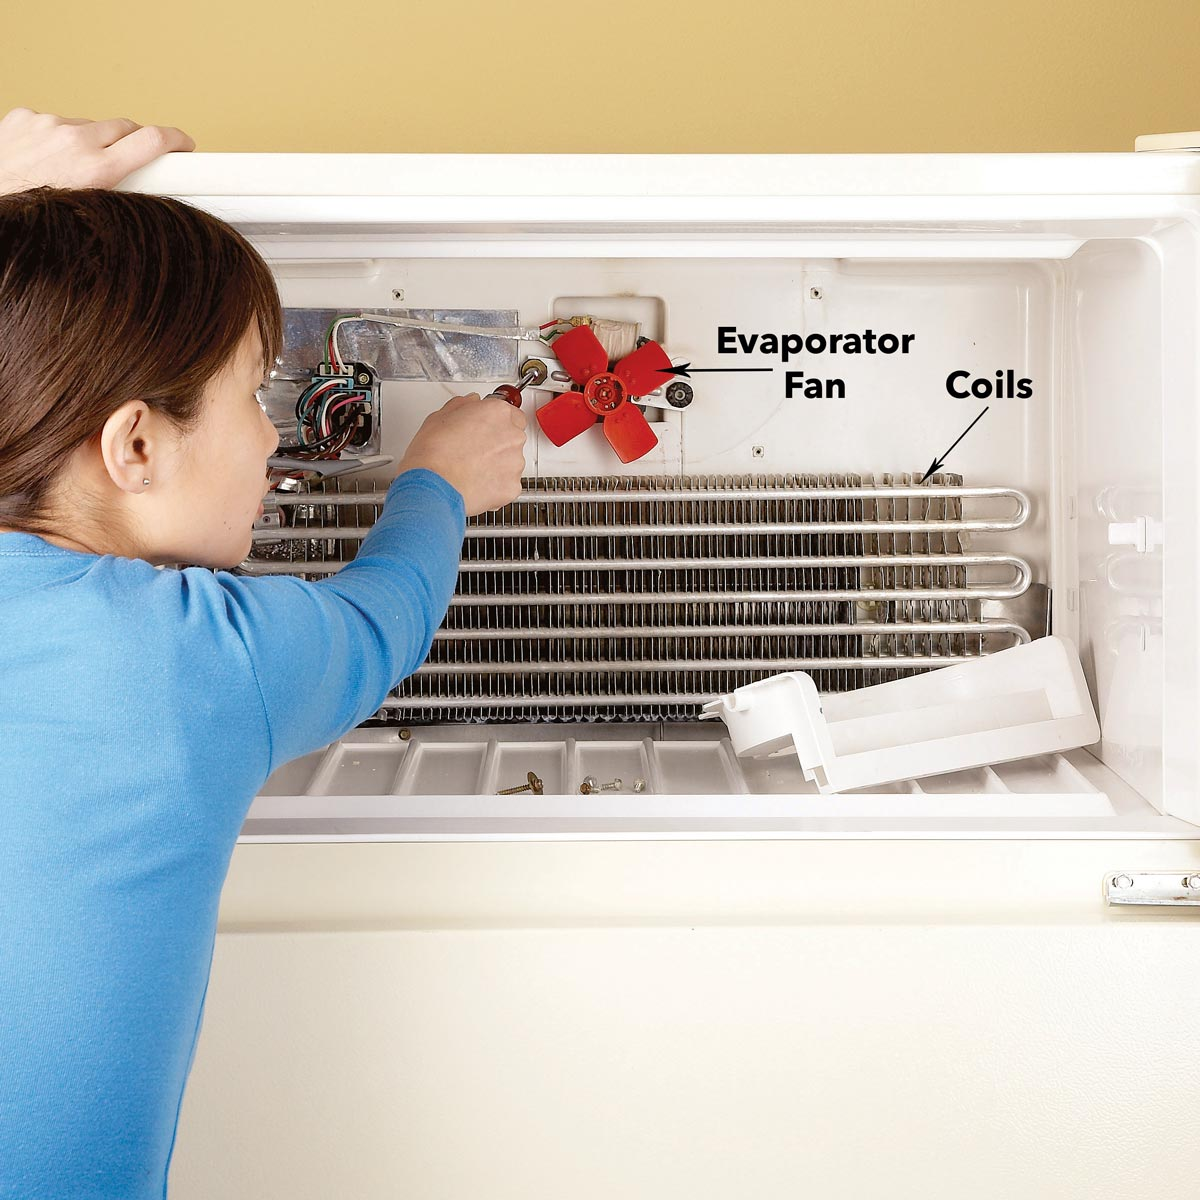 refrigerator repairevaporator fan and coils